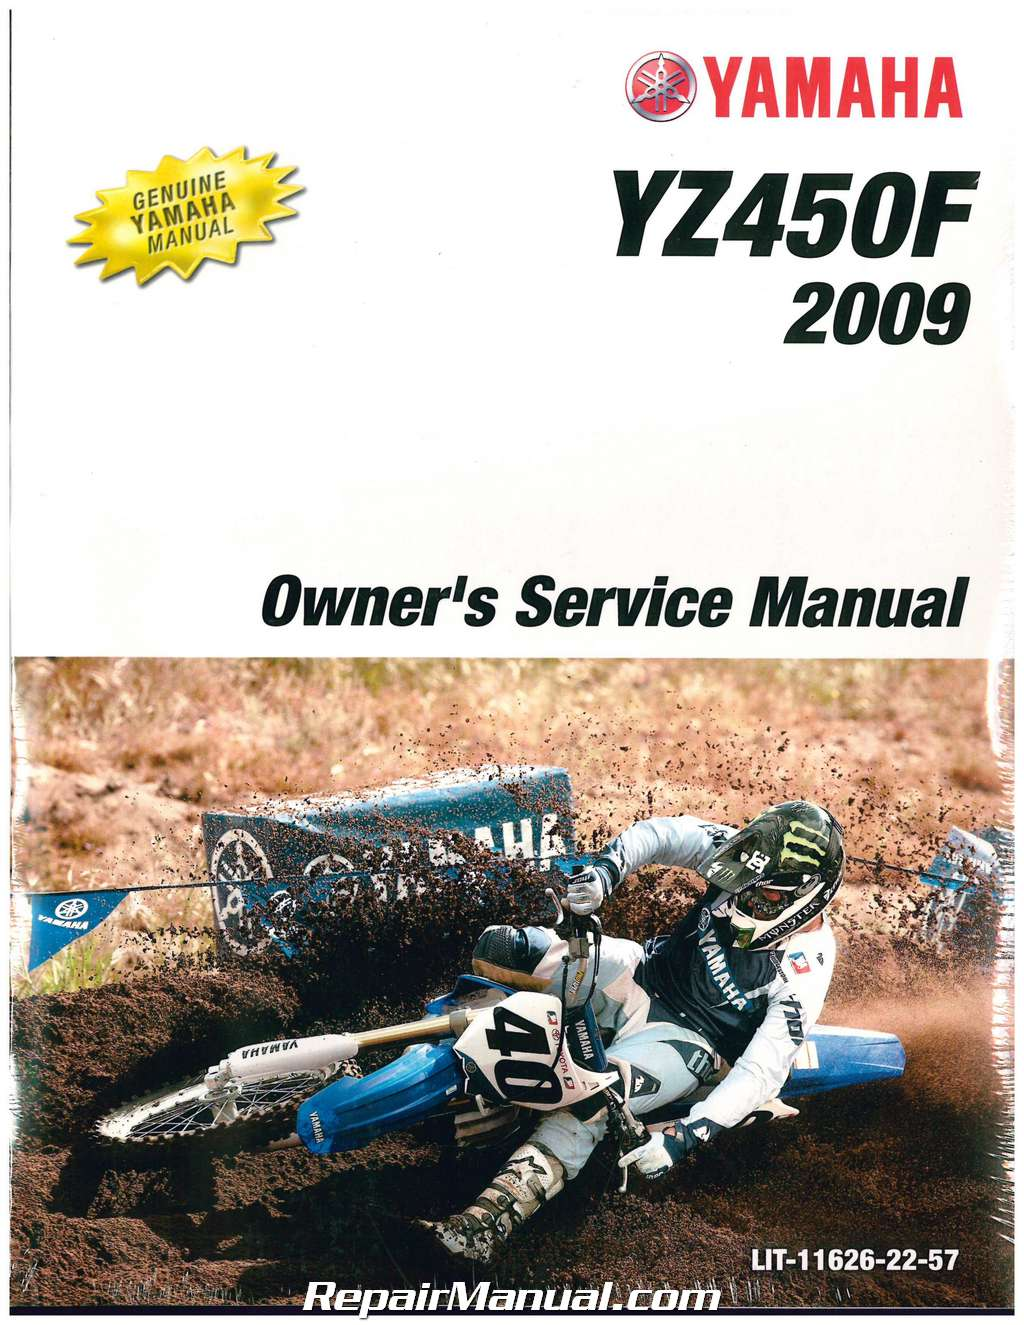 2009 yamaha yz450f motorcycle owners service manual. Black Bedroom Furniture Sets. Home Design Ideas